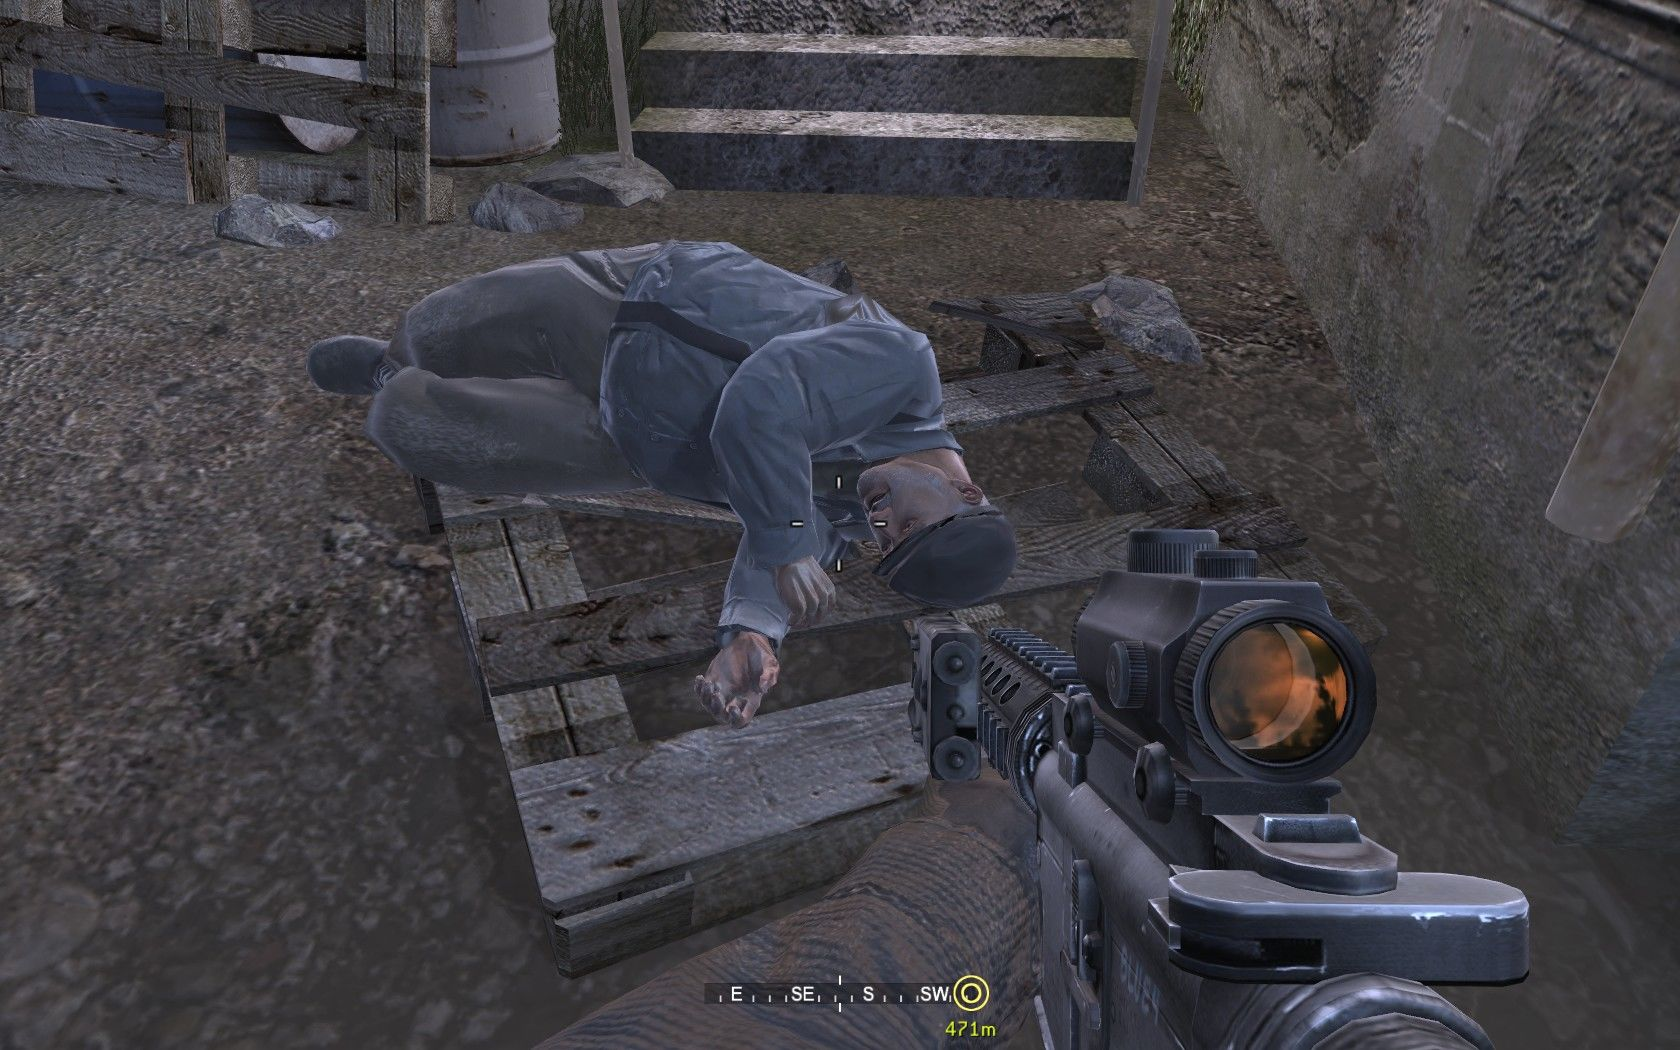 Call of Duty 4: Modern Warfare Windows The only civilian in the whole game (don't worry, the bad guys killed him).